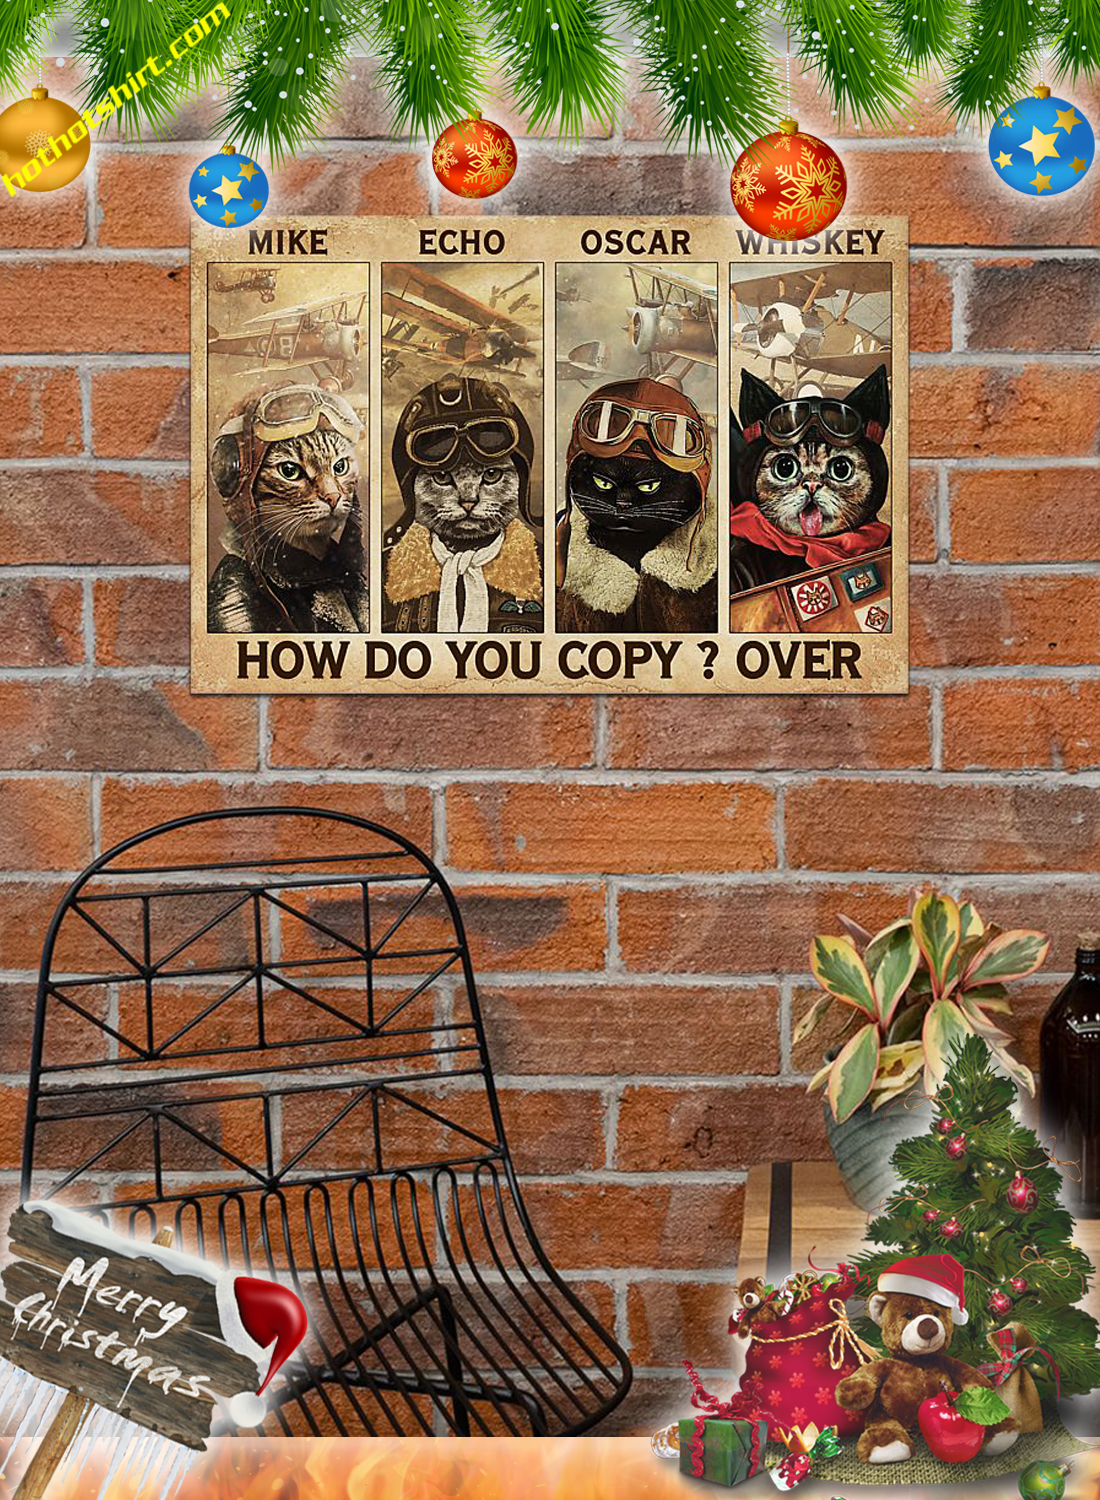 Cats pilot Mike echo oscar whiskey how do you copy over poster 3